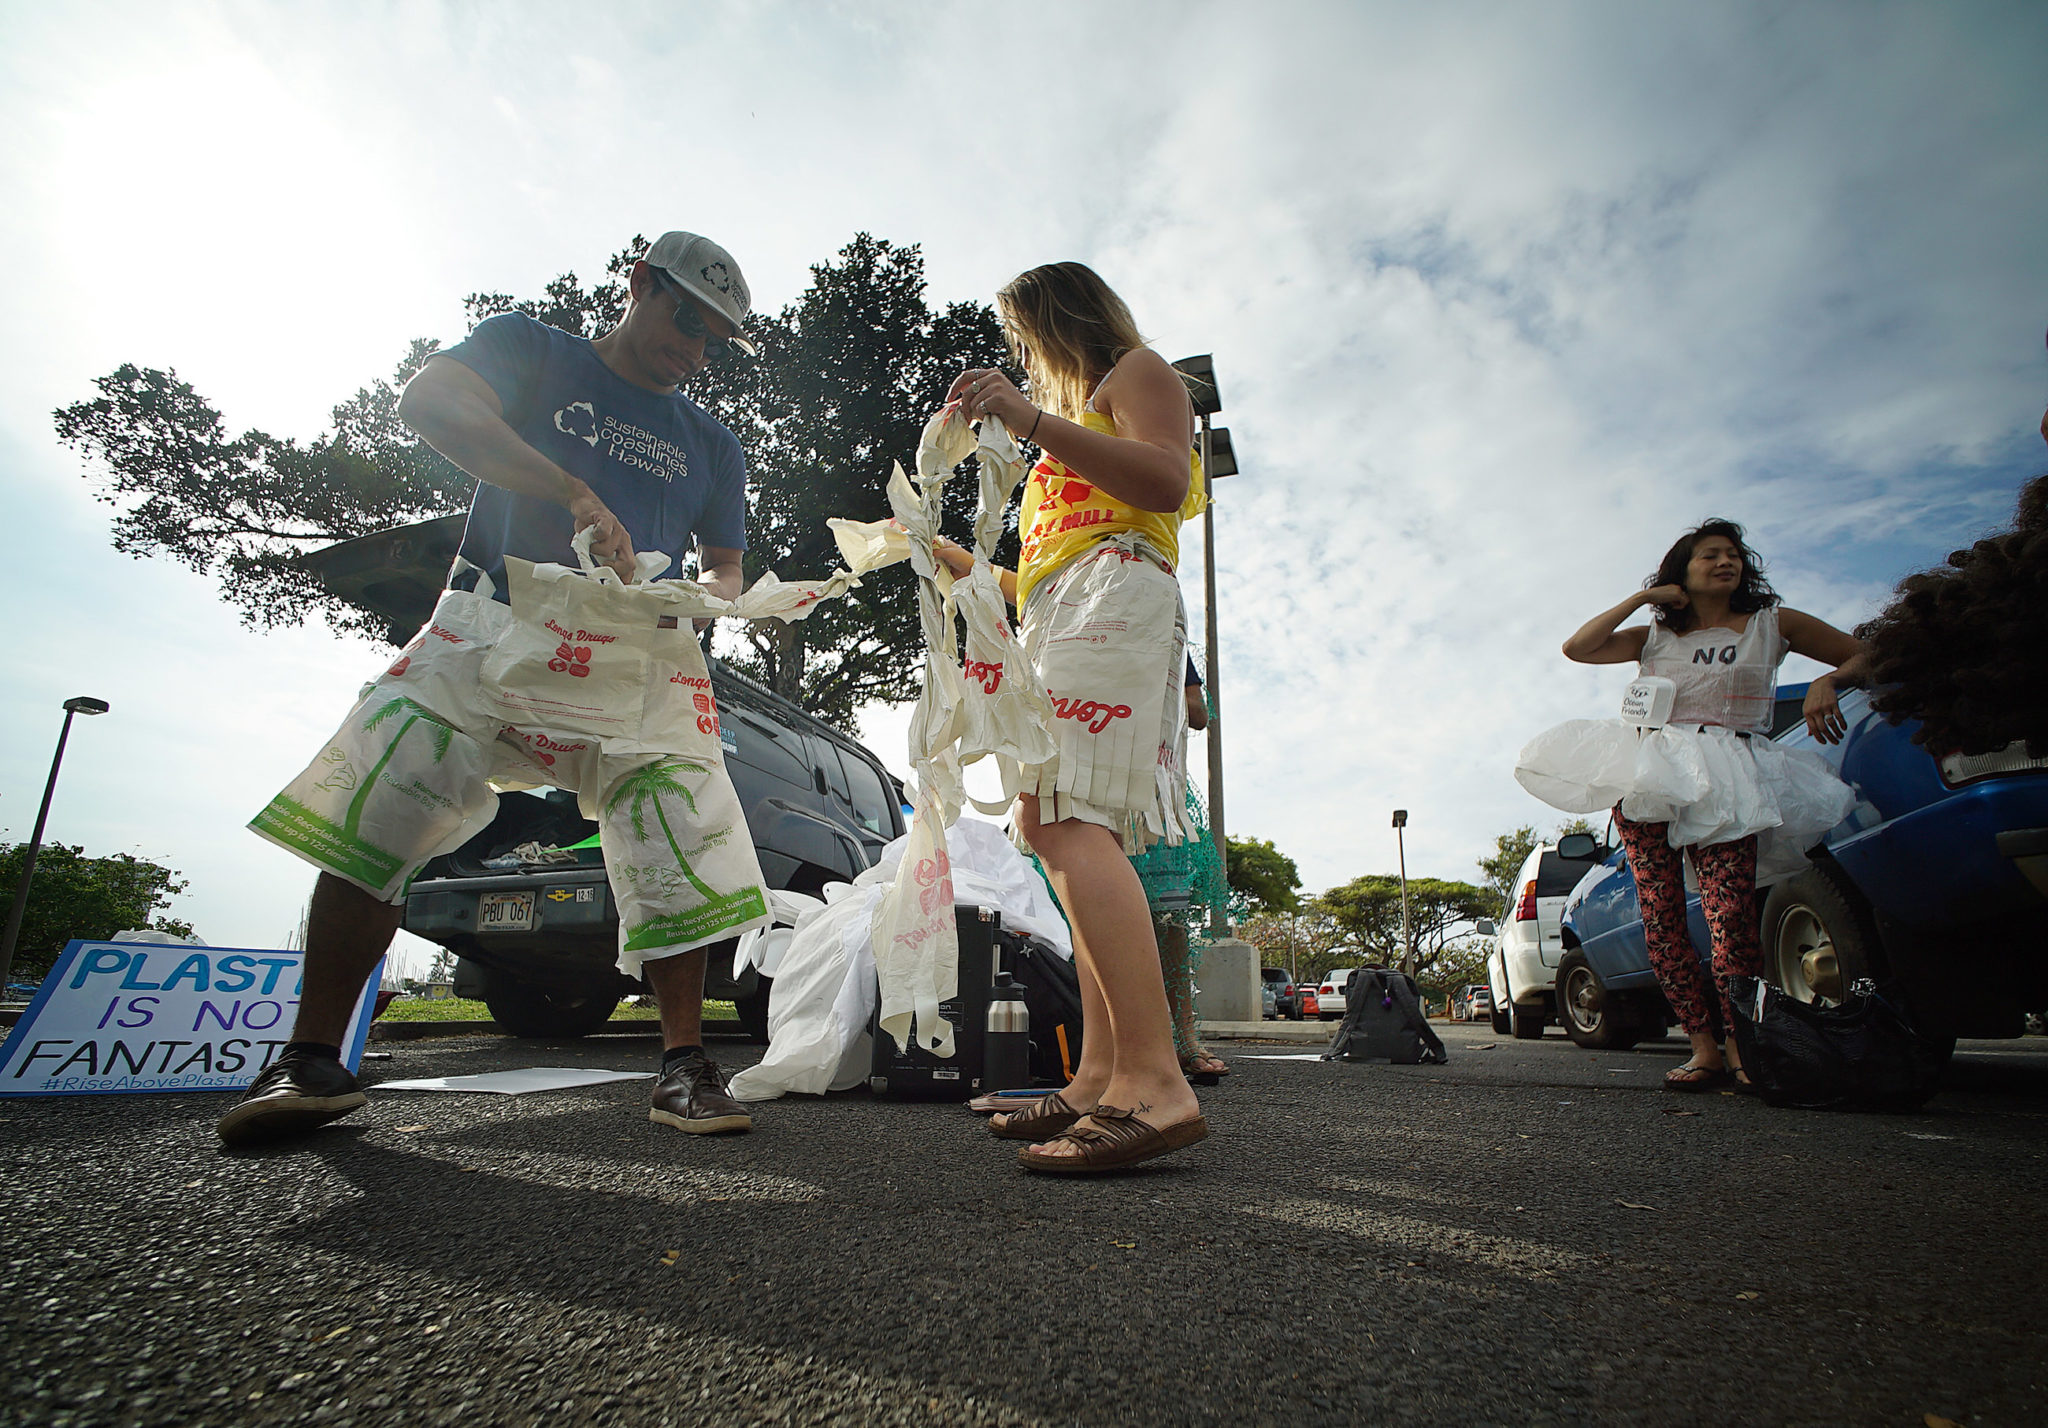 <p>The demonstrators called for a tougher plastic bag ban in Honolulu — a proposal the City Council just postponed — and a statewide ban on plastic foam food containers, which is under consideration at the Legislature.</p>